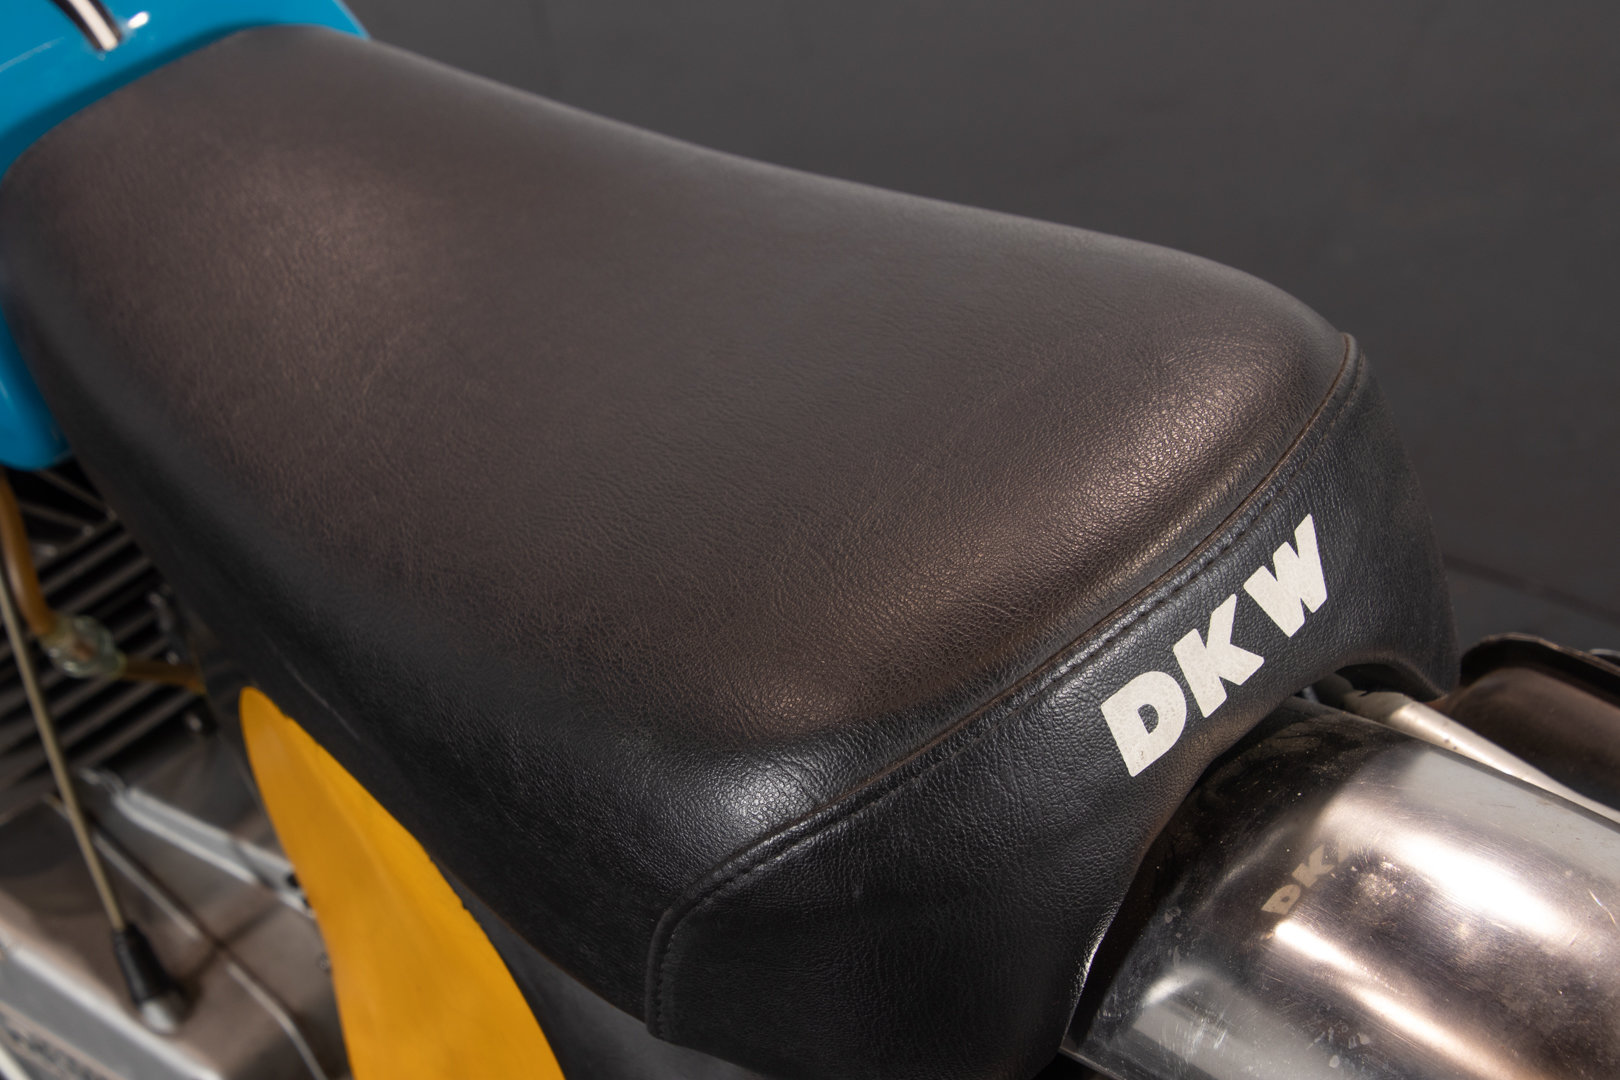 DKW - HERCULES 125 GS - 1973 For Sale (picture 5 of 6)